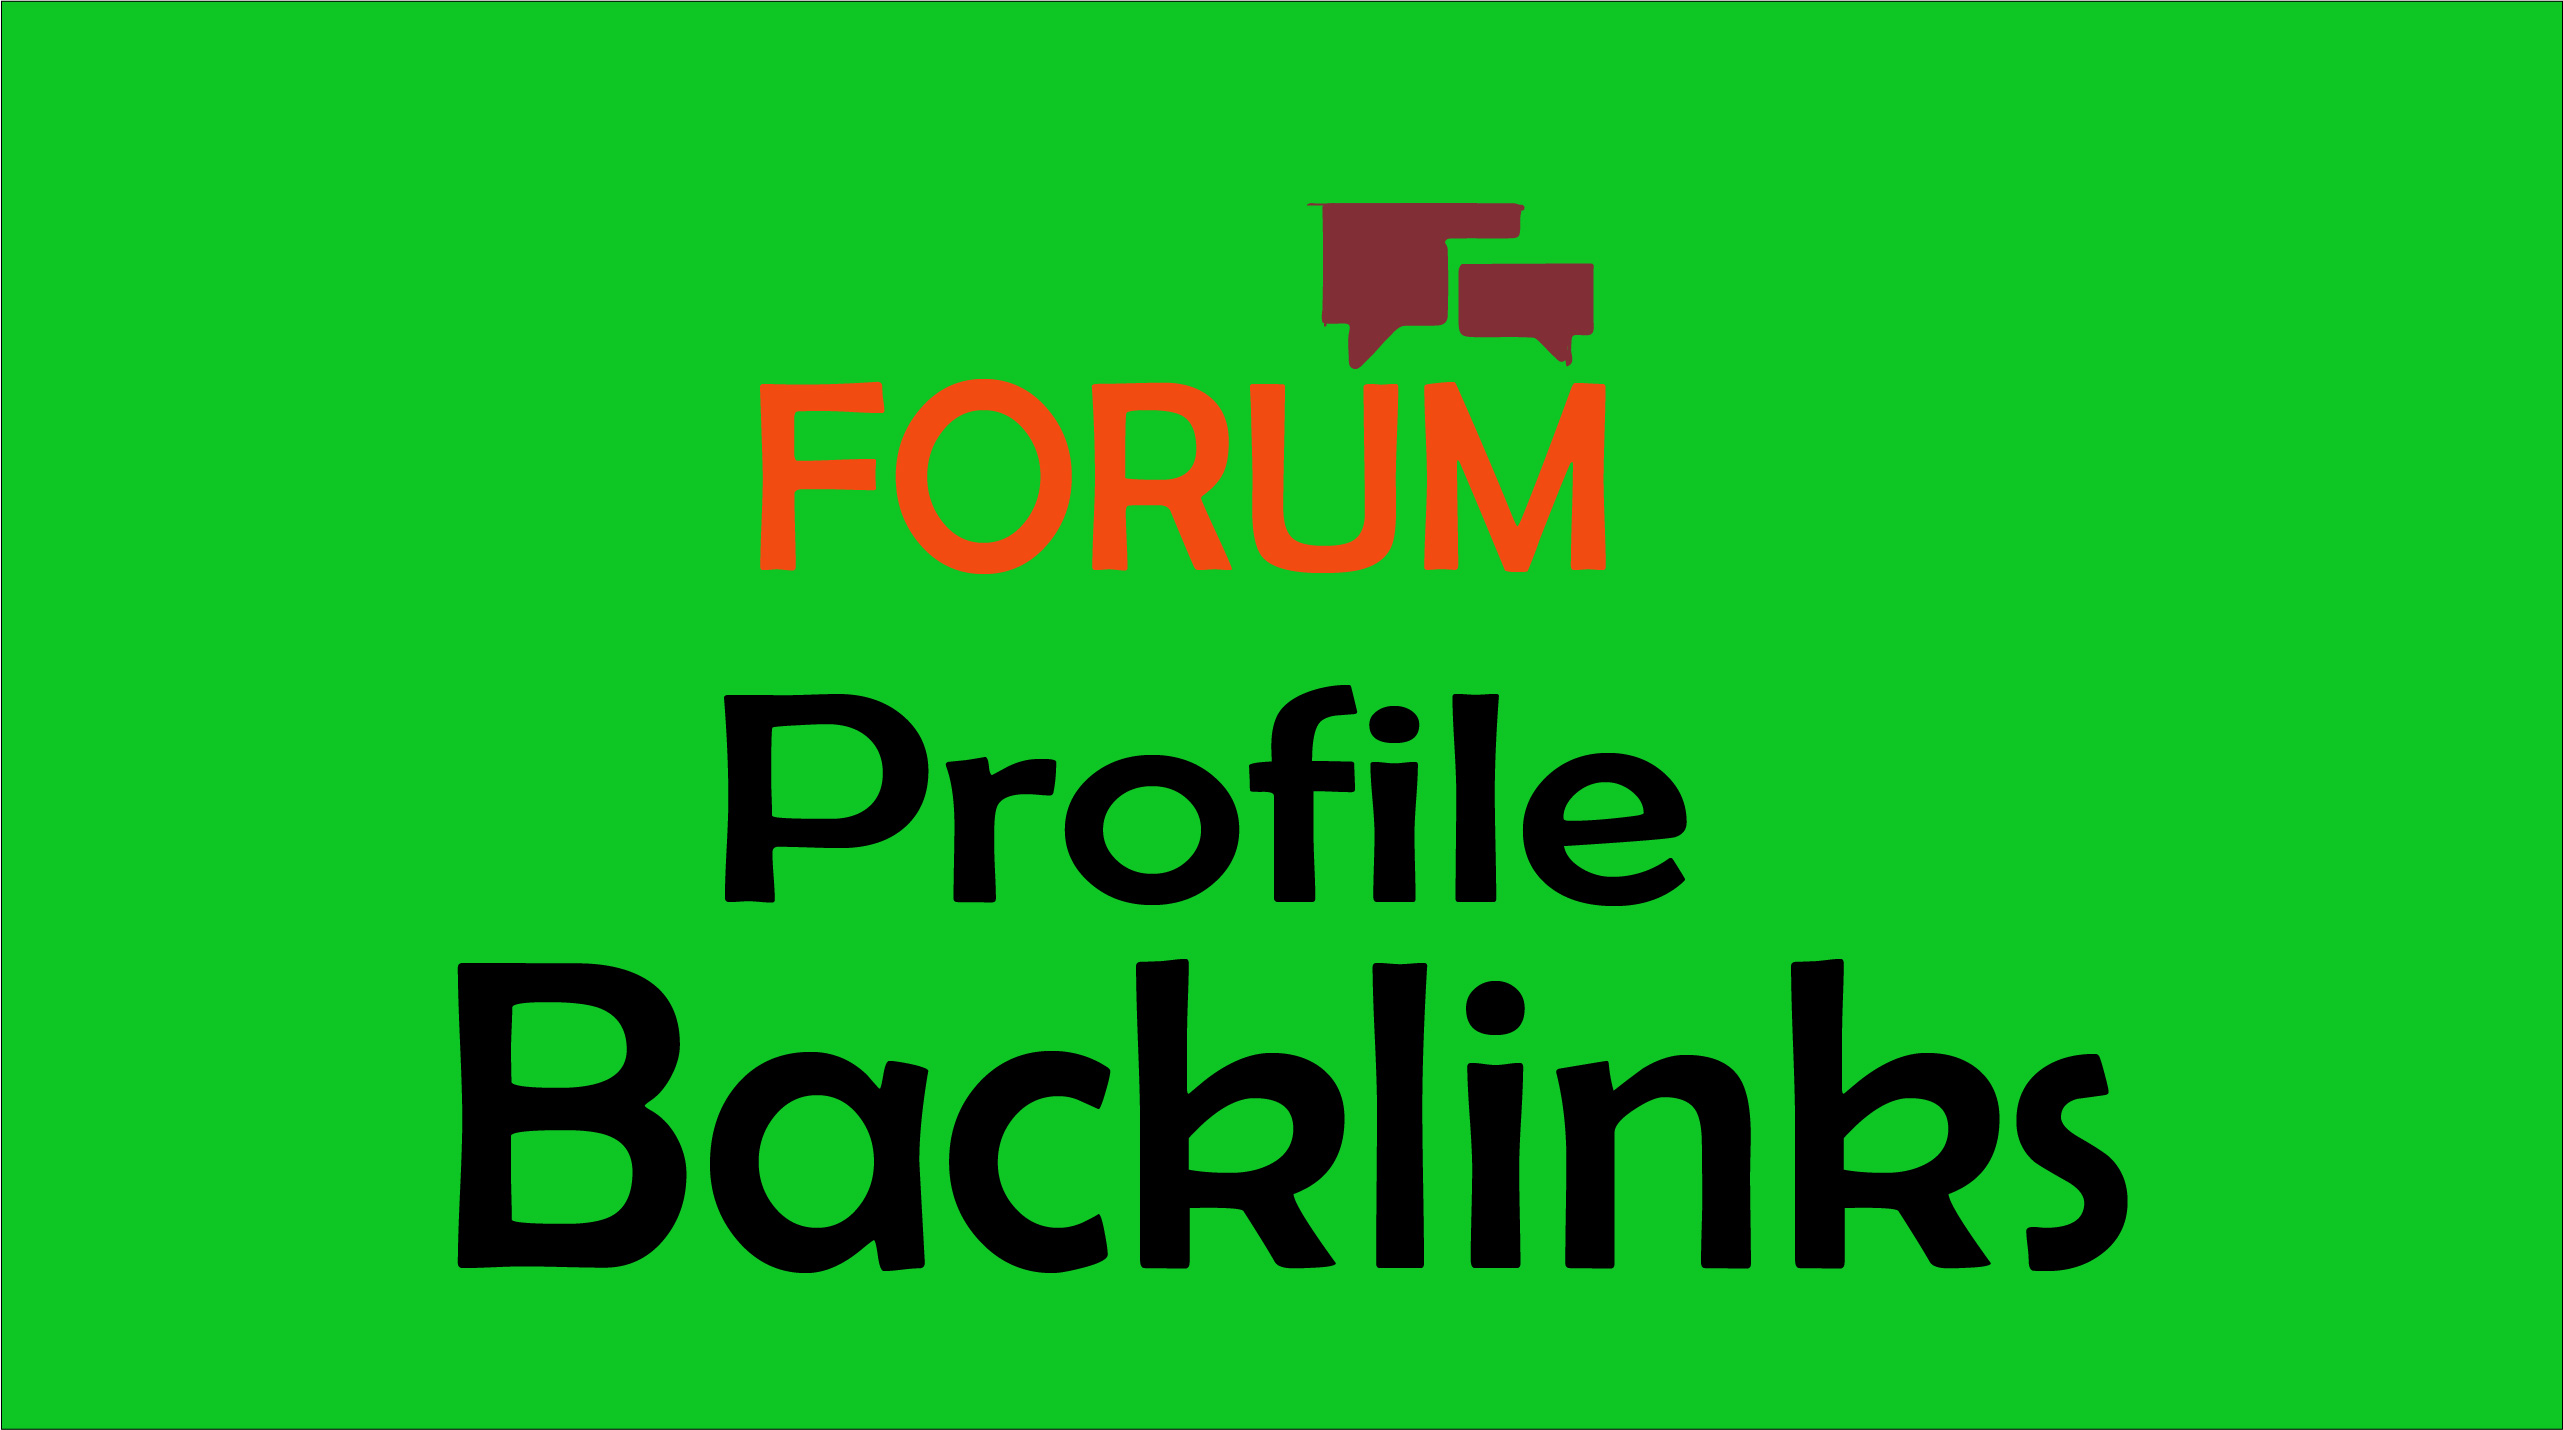 Get 500 High Quality Forum profiles backlinks for Your Site